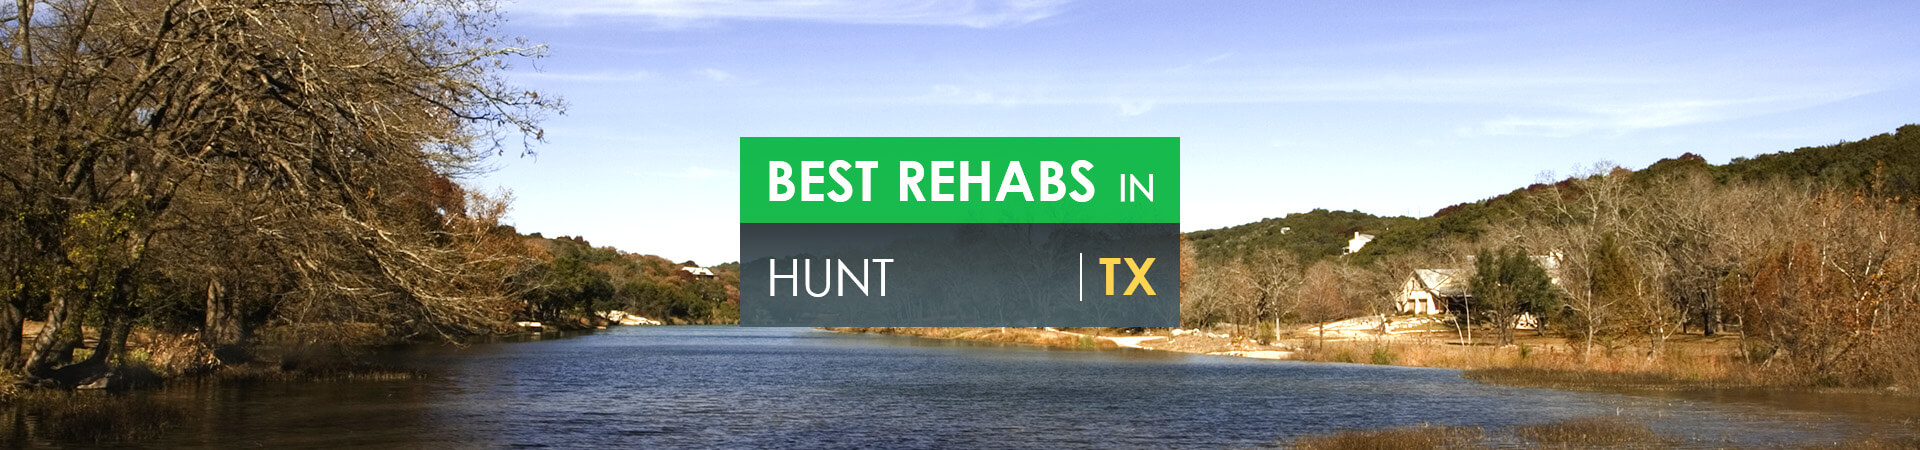 Best rehabs in Hunt, TX